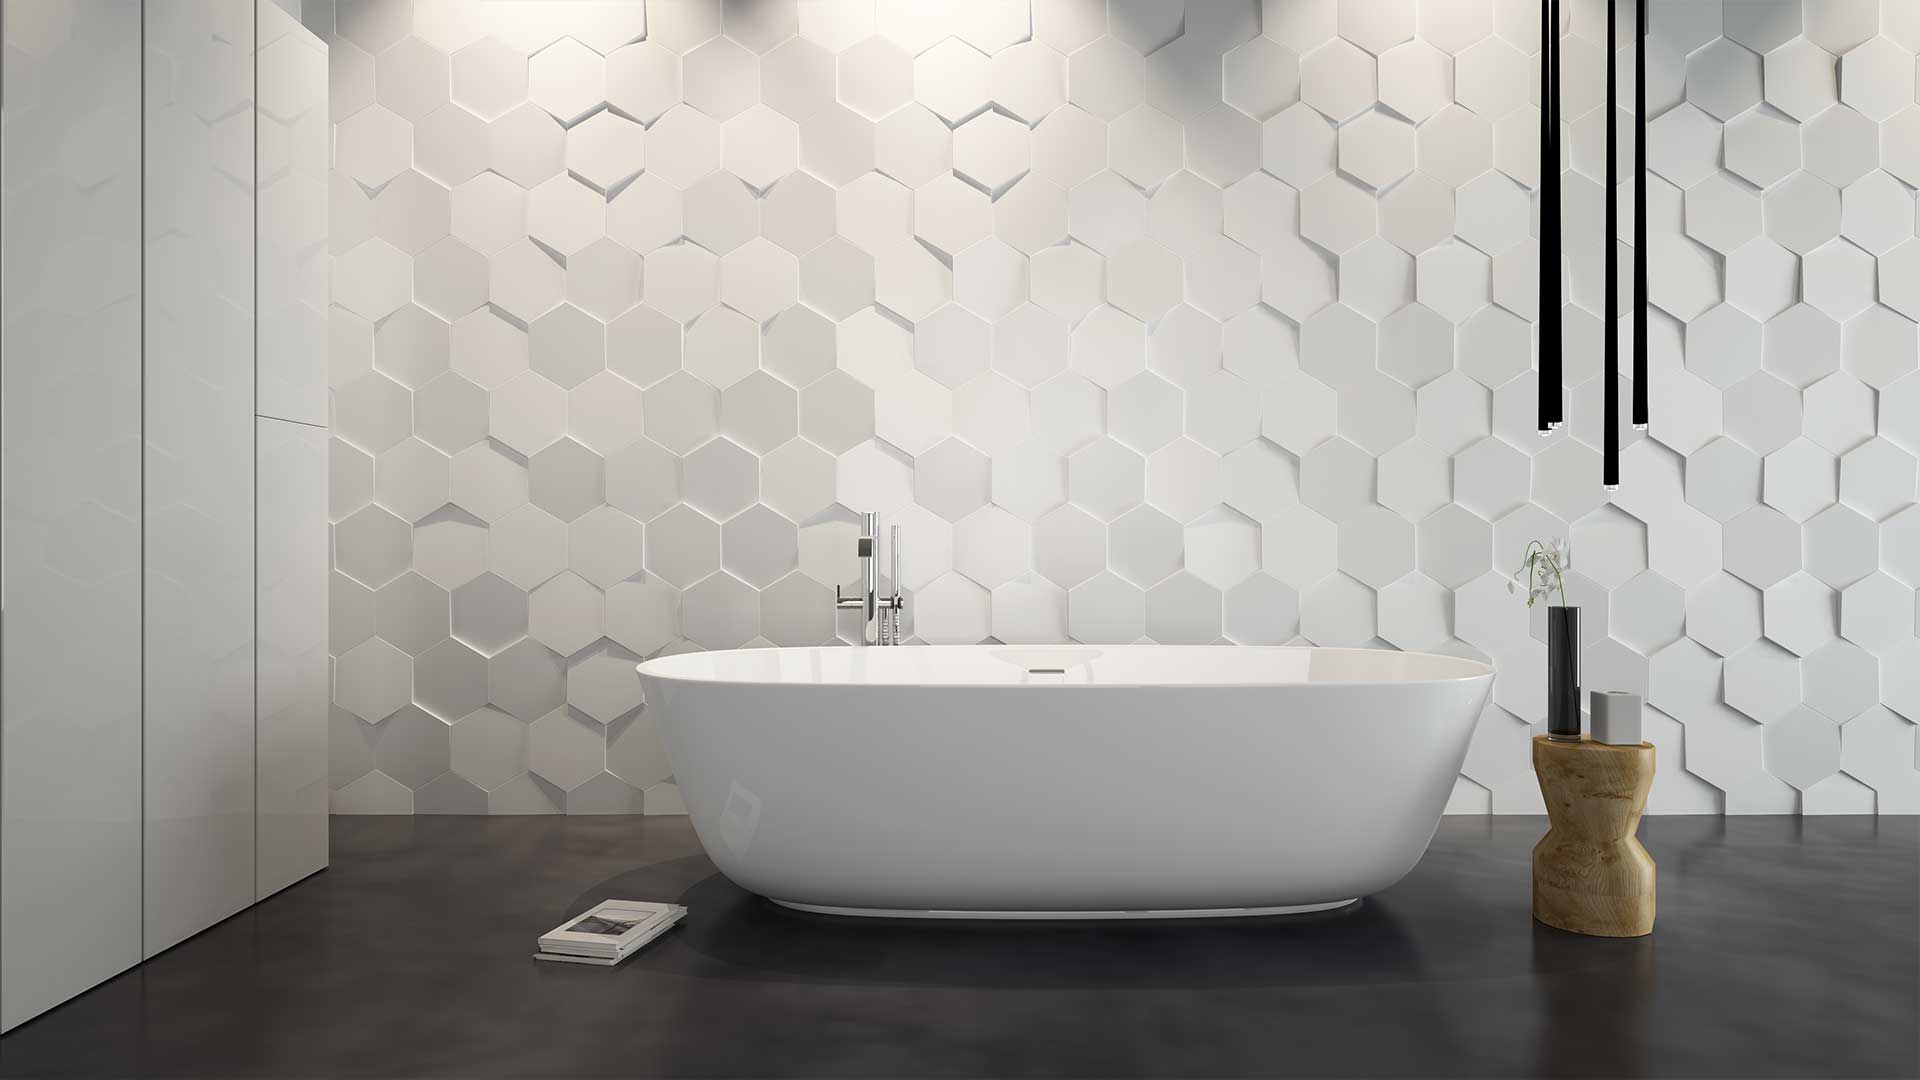 27 wonderful pictures and ideas of italian bathroom wall tiles - Carrelage salle de bain design ...